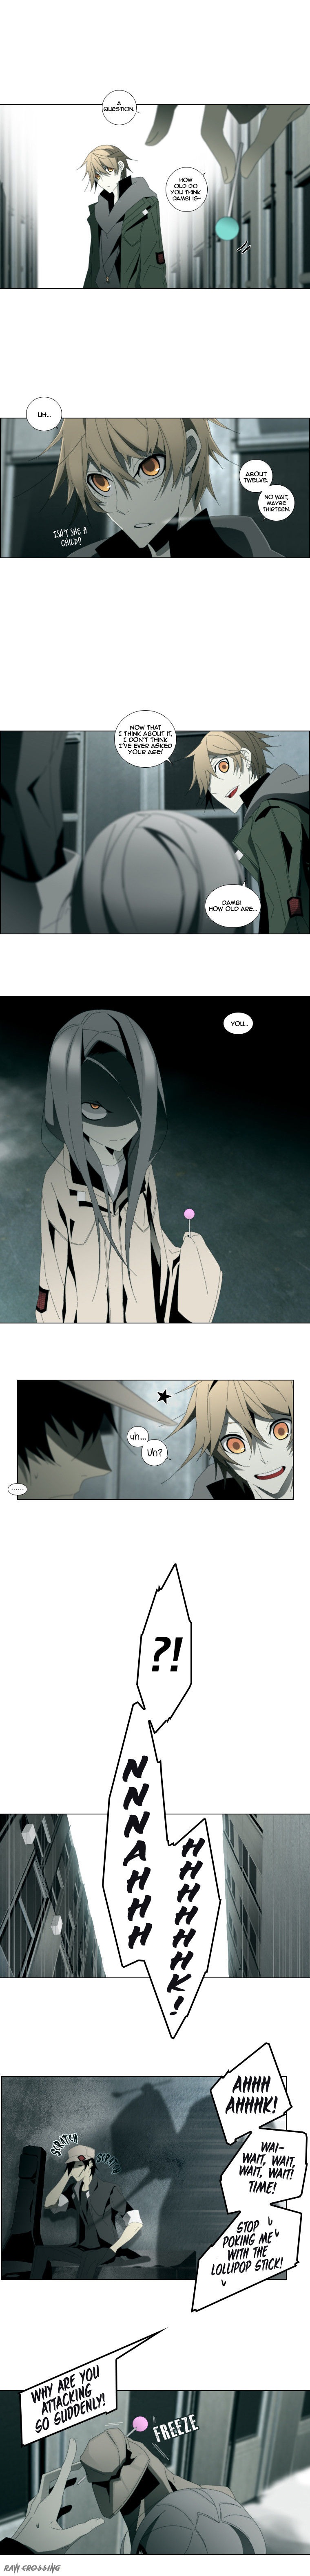 Trace: Perfume 2 Page 3